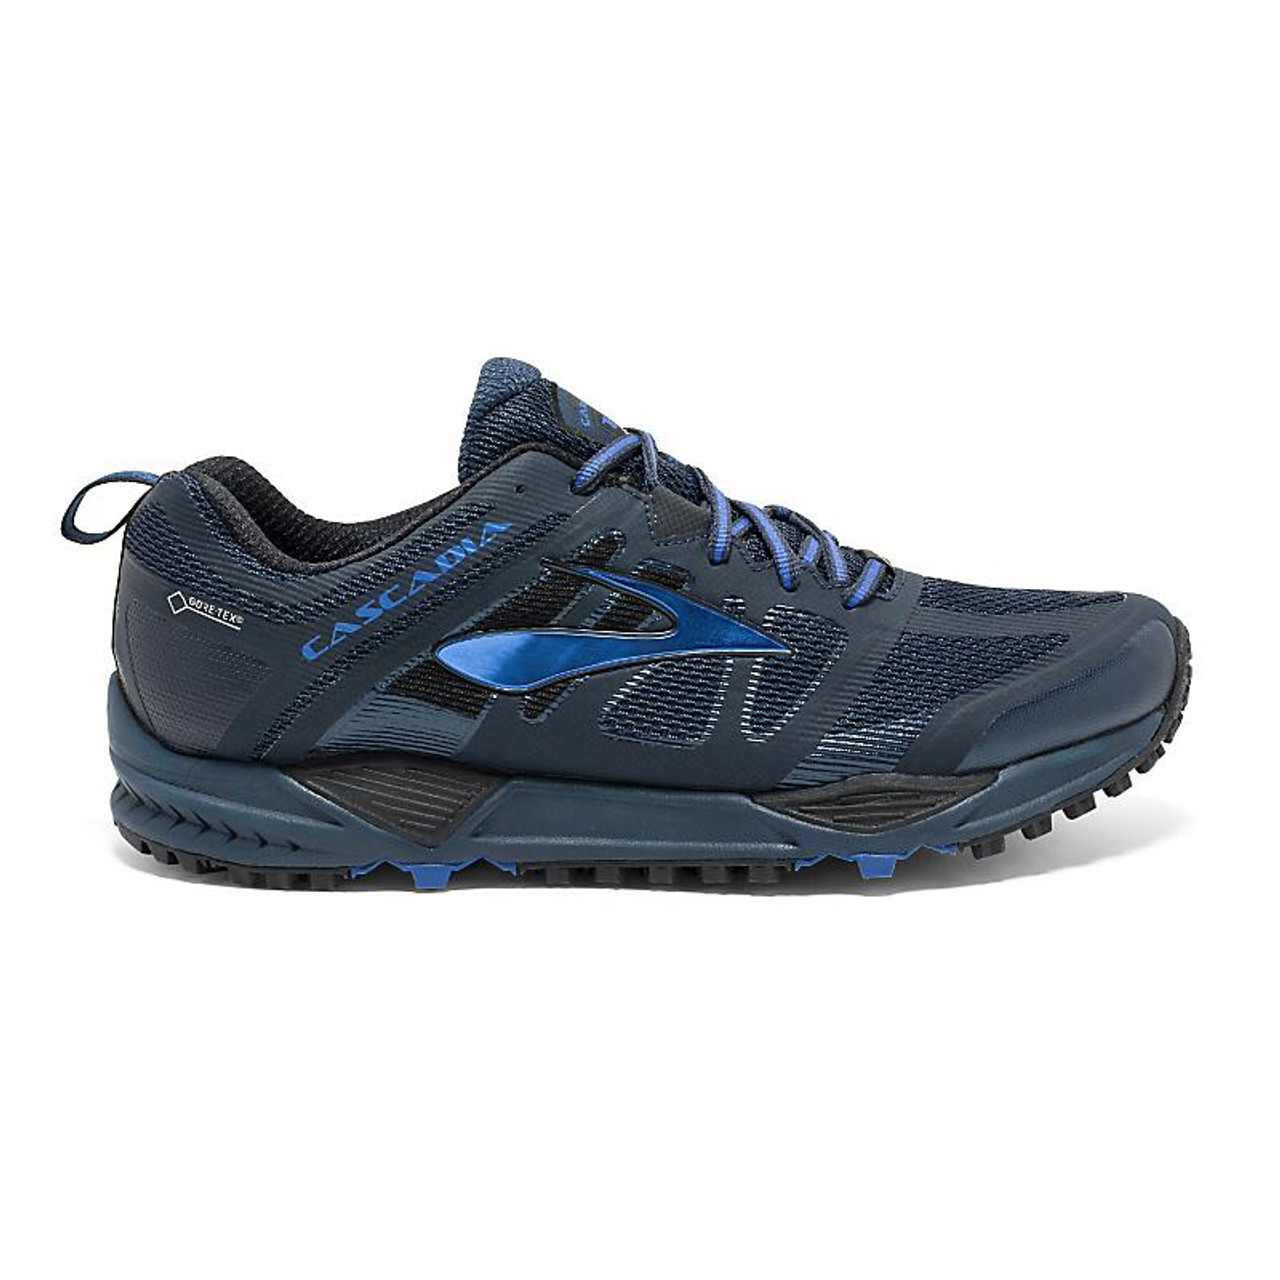 934298b0f30 Men s Brooks Cascadia 11 GTX Trail Running Shoe